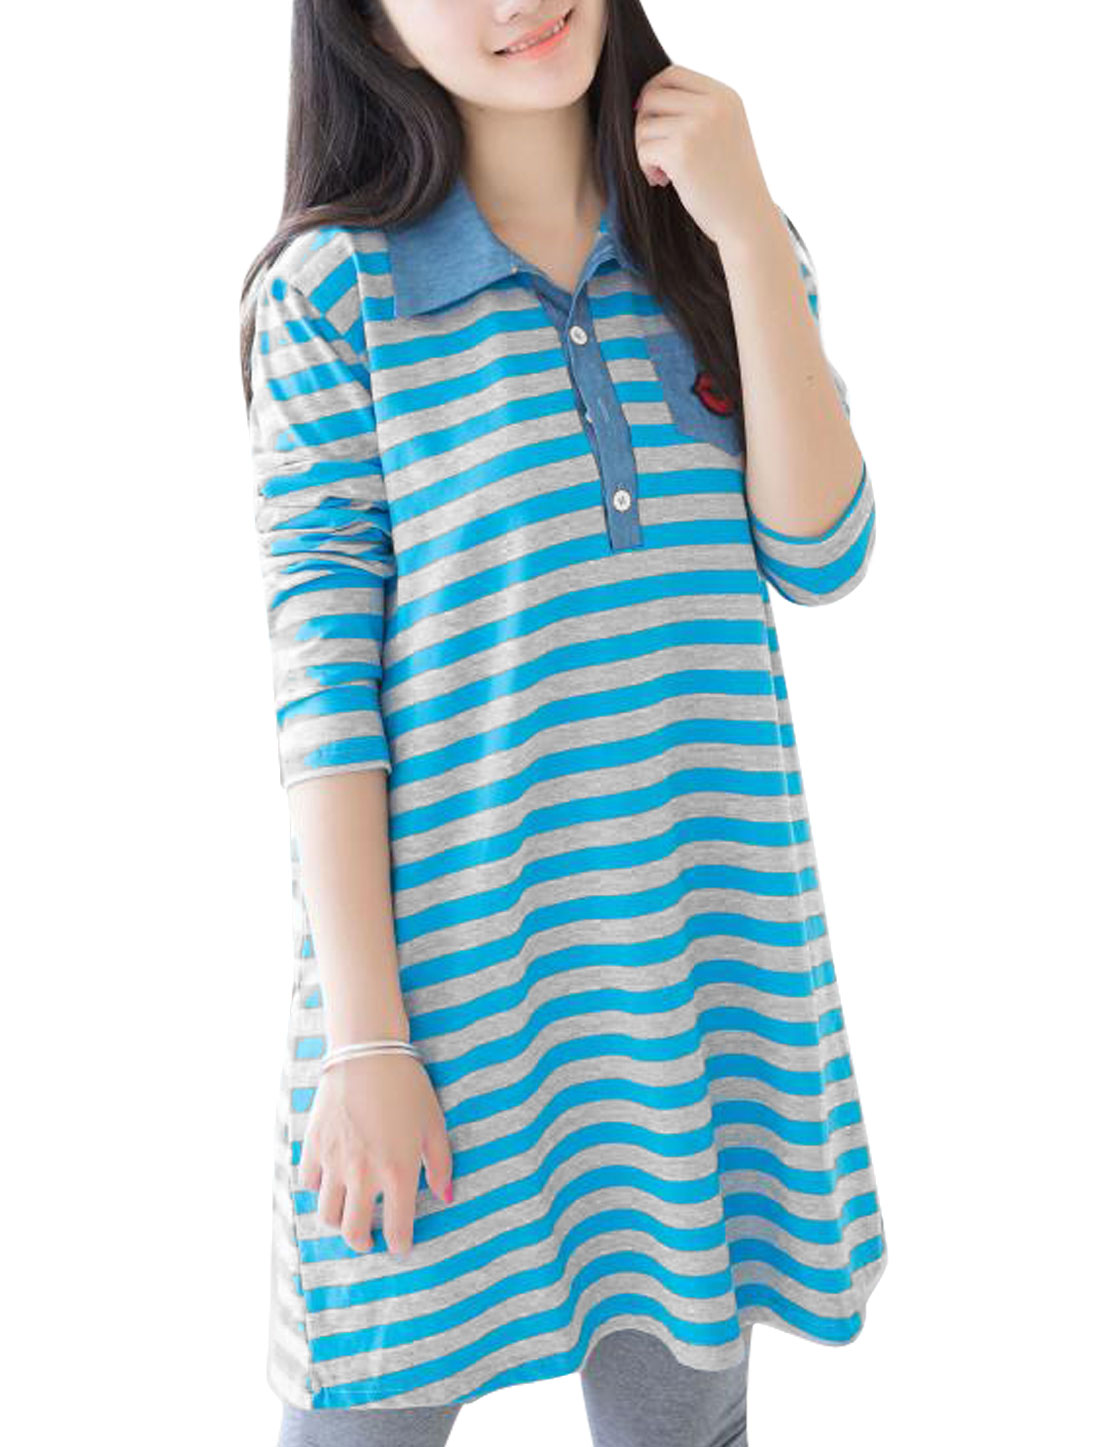 Maternity Red Lips Applique Point Collar Striped Dress Blue Light Gray M